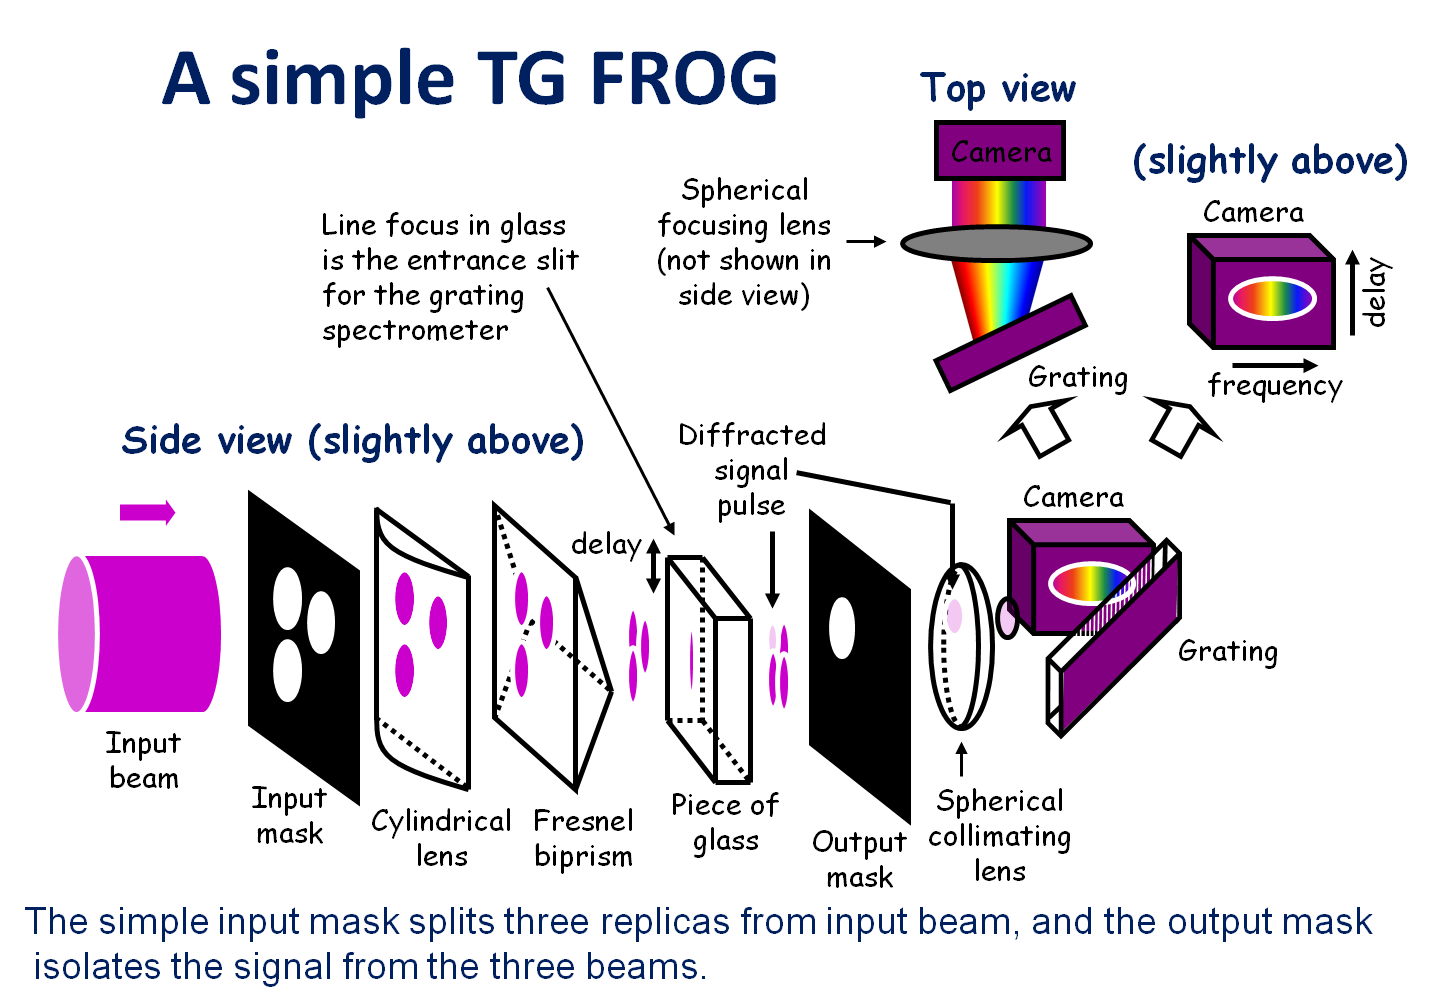 Advanced femto technology shg frog products tg frog pulse transient grating frequency resolved optical gating arrangement optics express 2006 this shows the schematic diagram of a simple version tg frog pooptronica